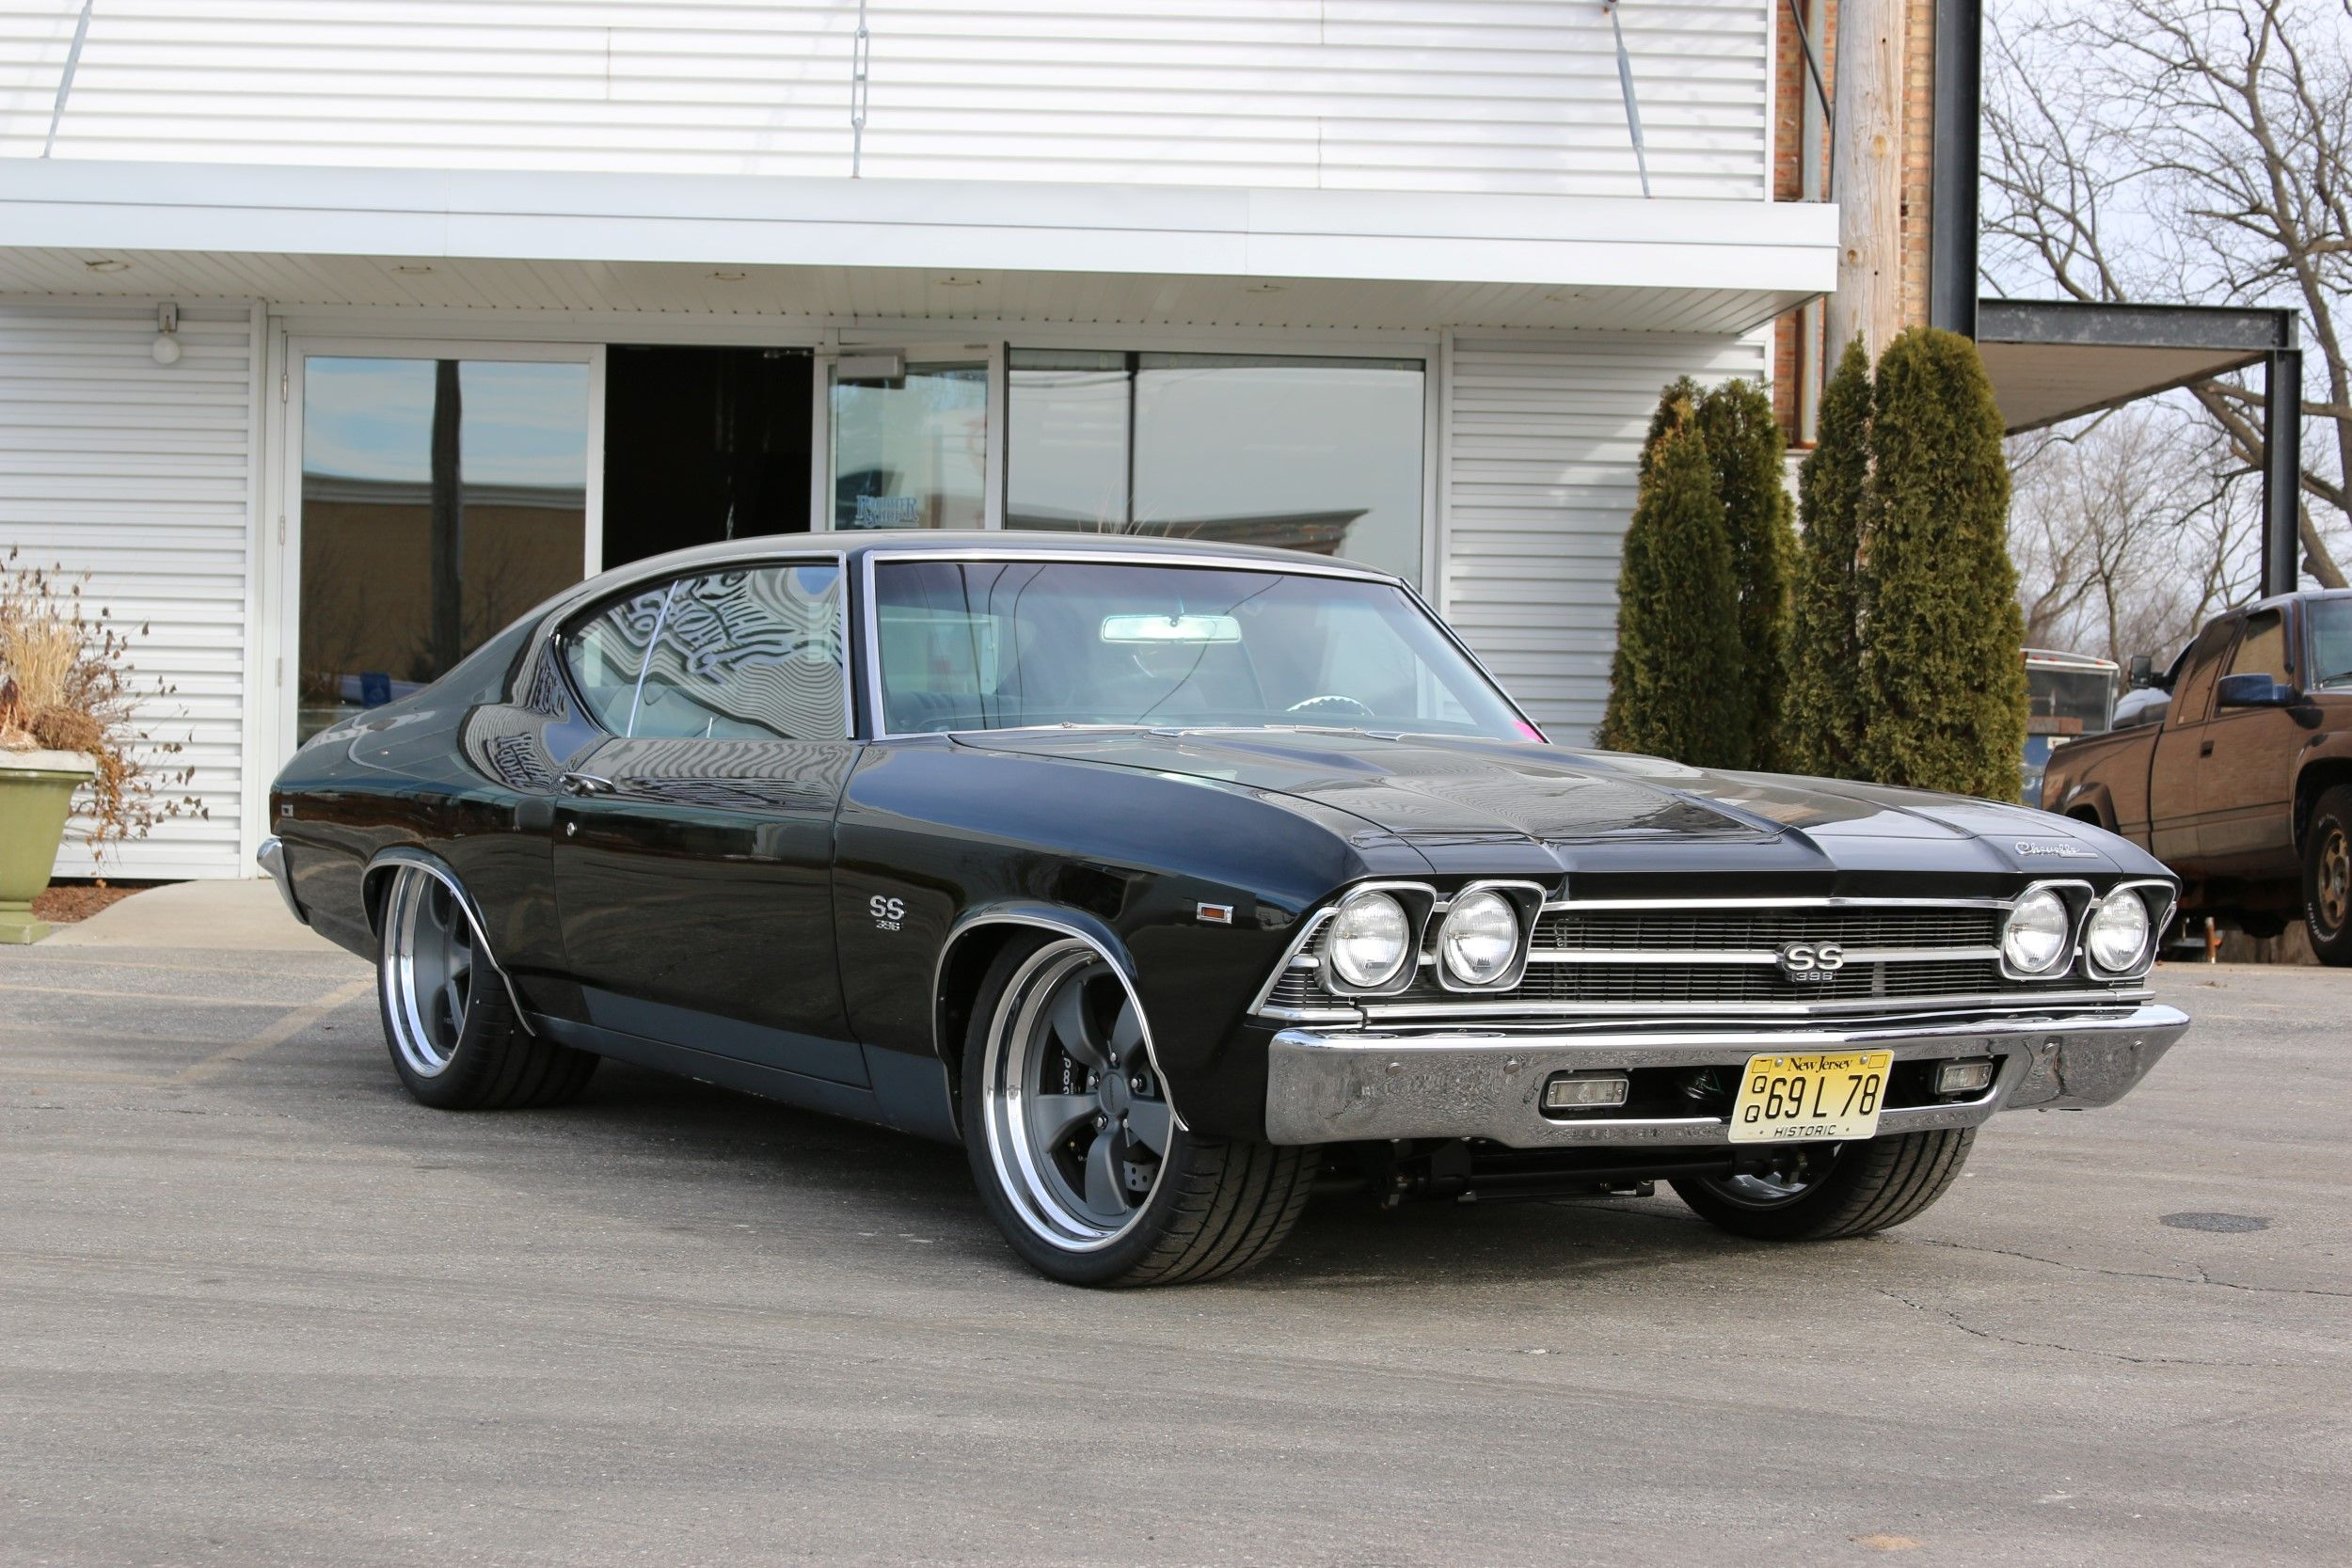 george 39 s 39 69 chevelle ss is another incredible project by roadster shop featuring a roadster. Black Bedroom Furniture Sets. Home Design Ideas